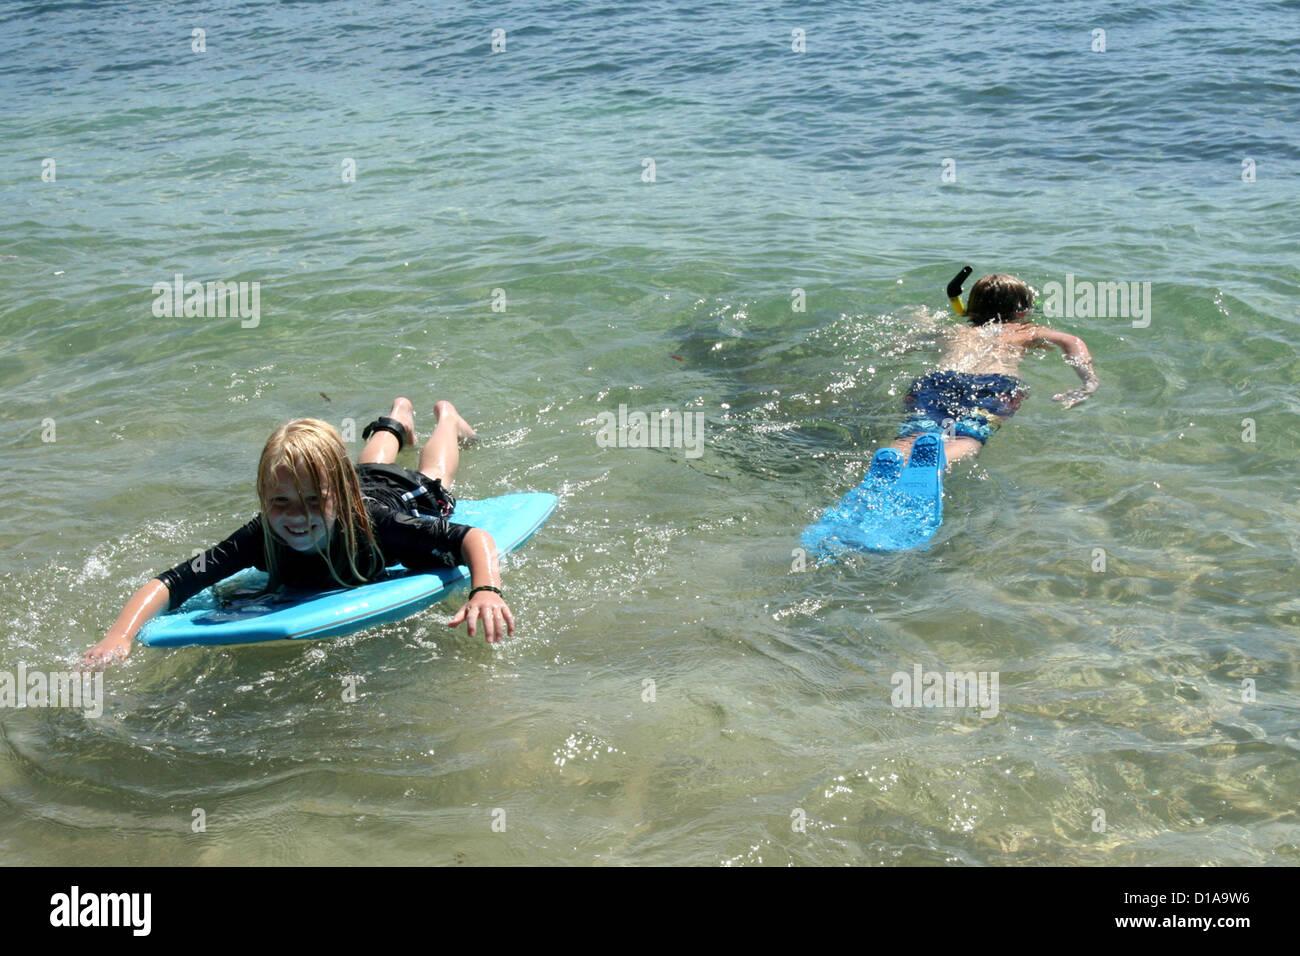 Kids snorkeling and boogie boarding in clear blue water of Kapalua beach, Maui, Hawaii Stock Photo